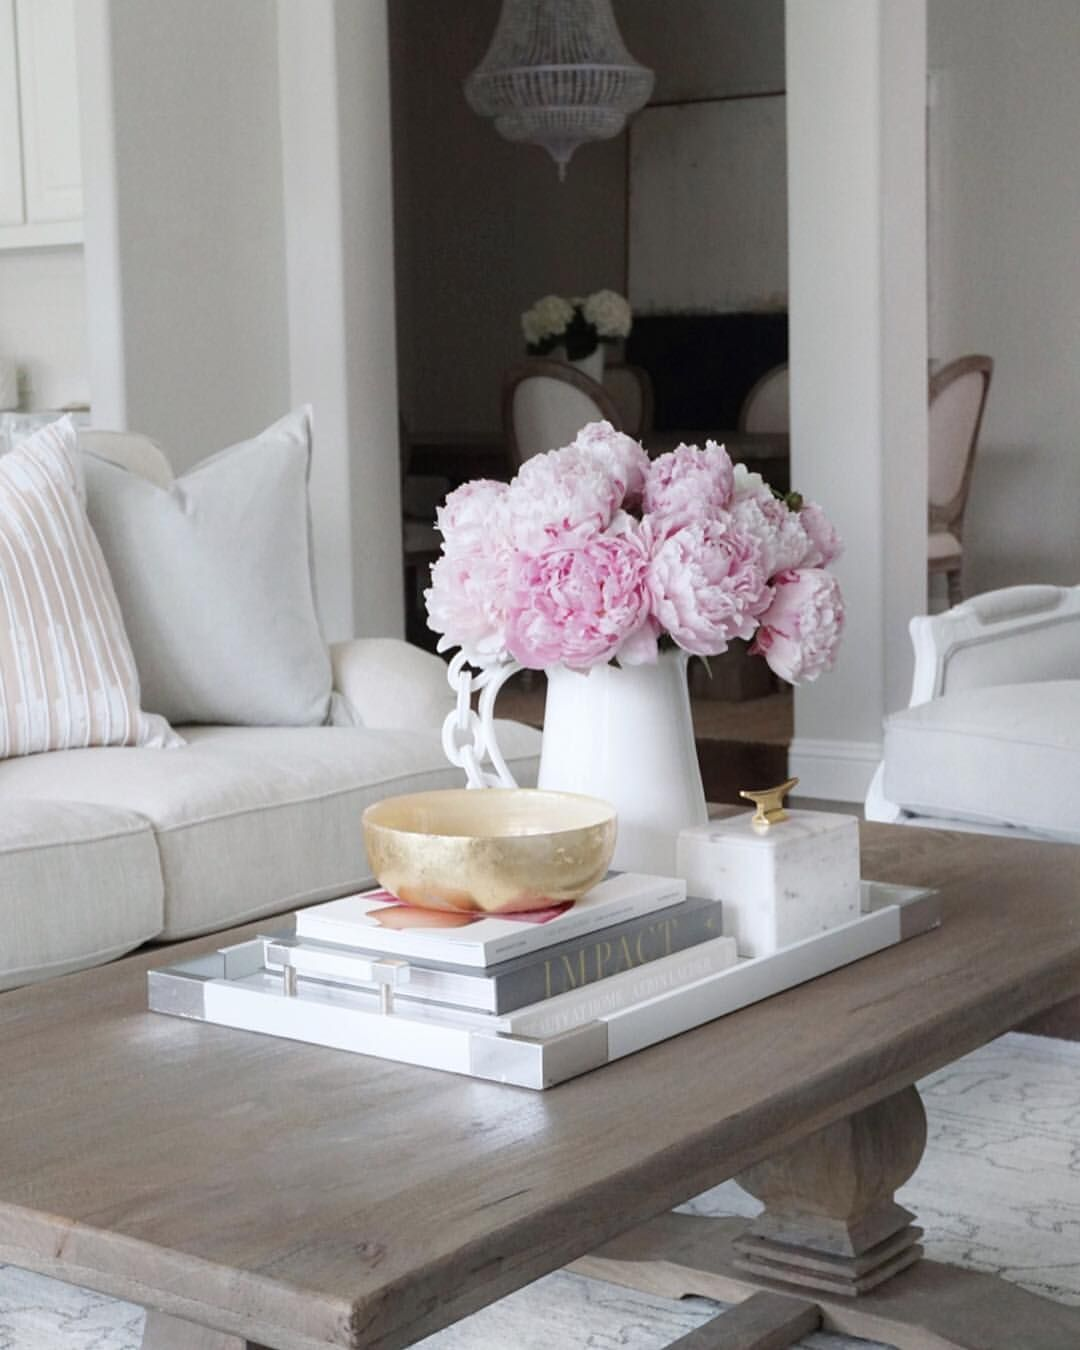 Neutral Living Room Decor Pink Peonies Coffee Table Styling White Tray Coffee Table Dec Coffe Table Decor Living Room Decor Neutral Coffee Table Decor Tray